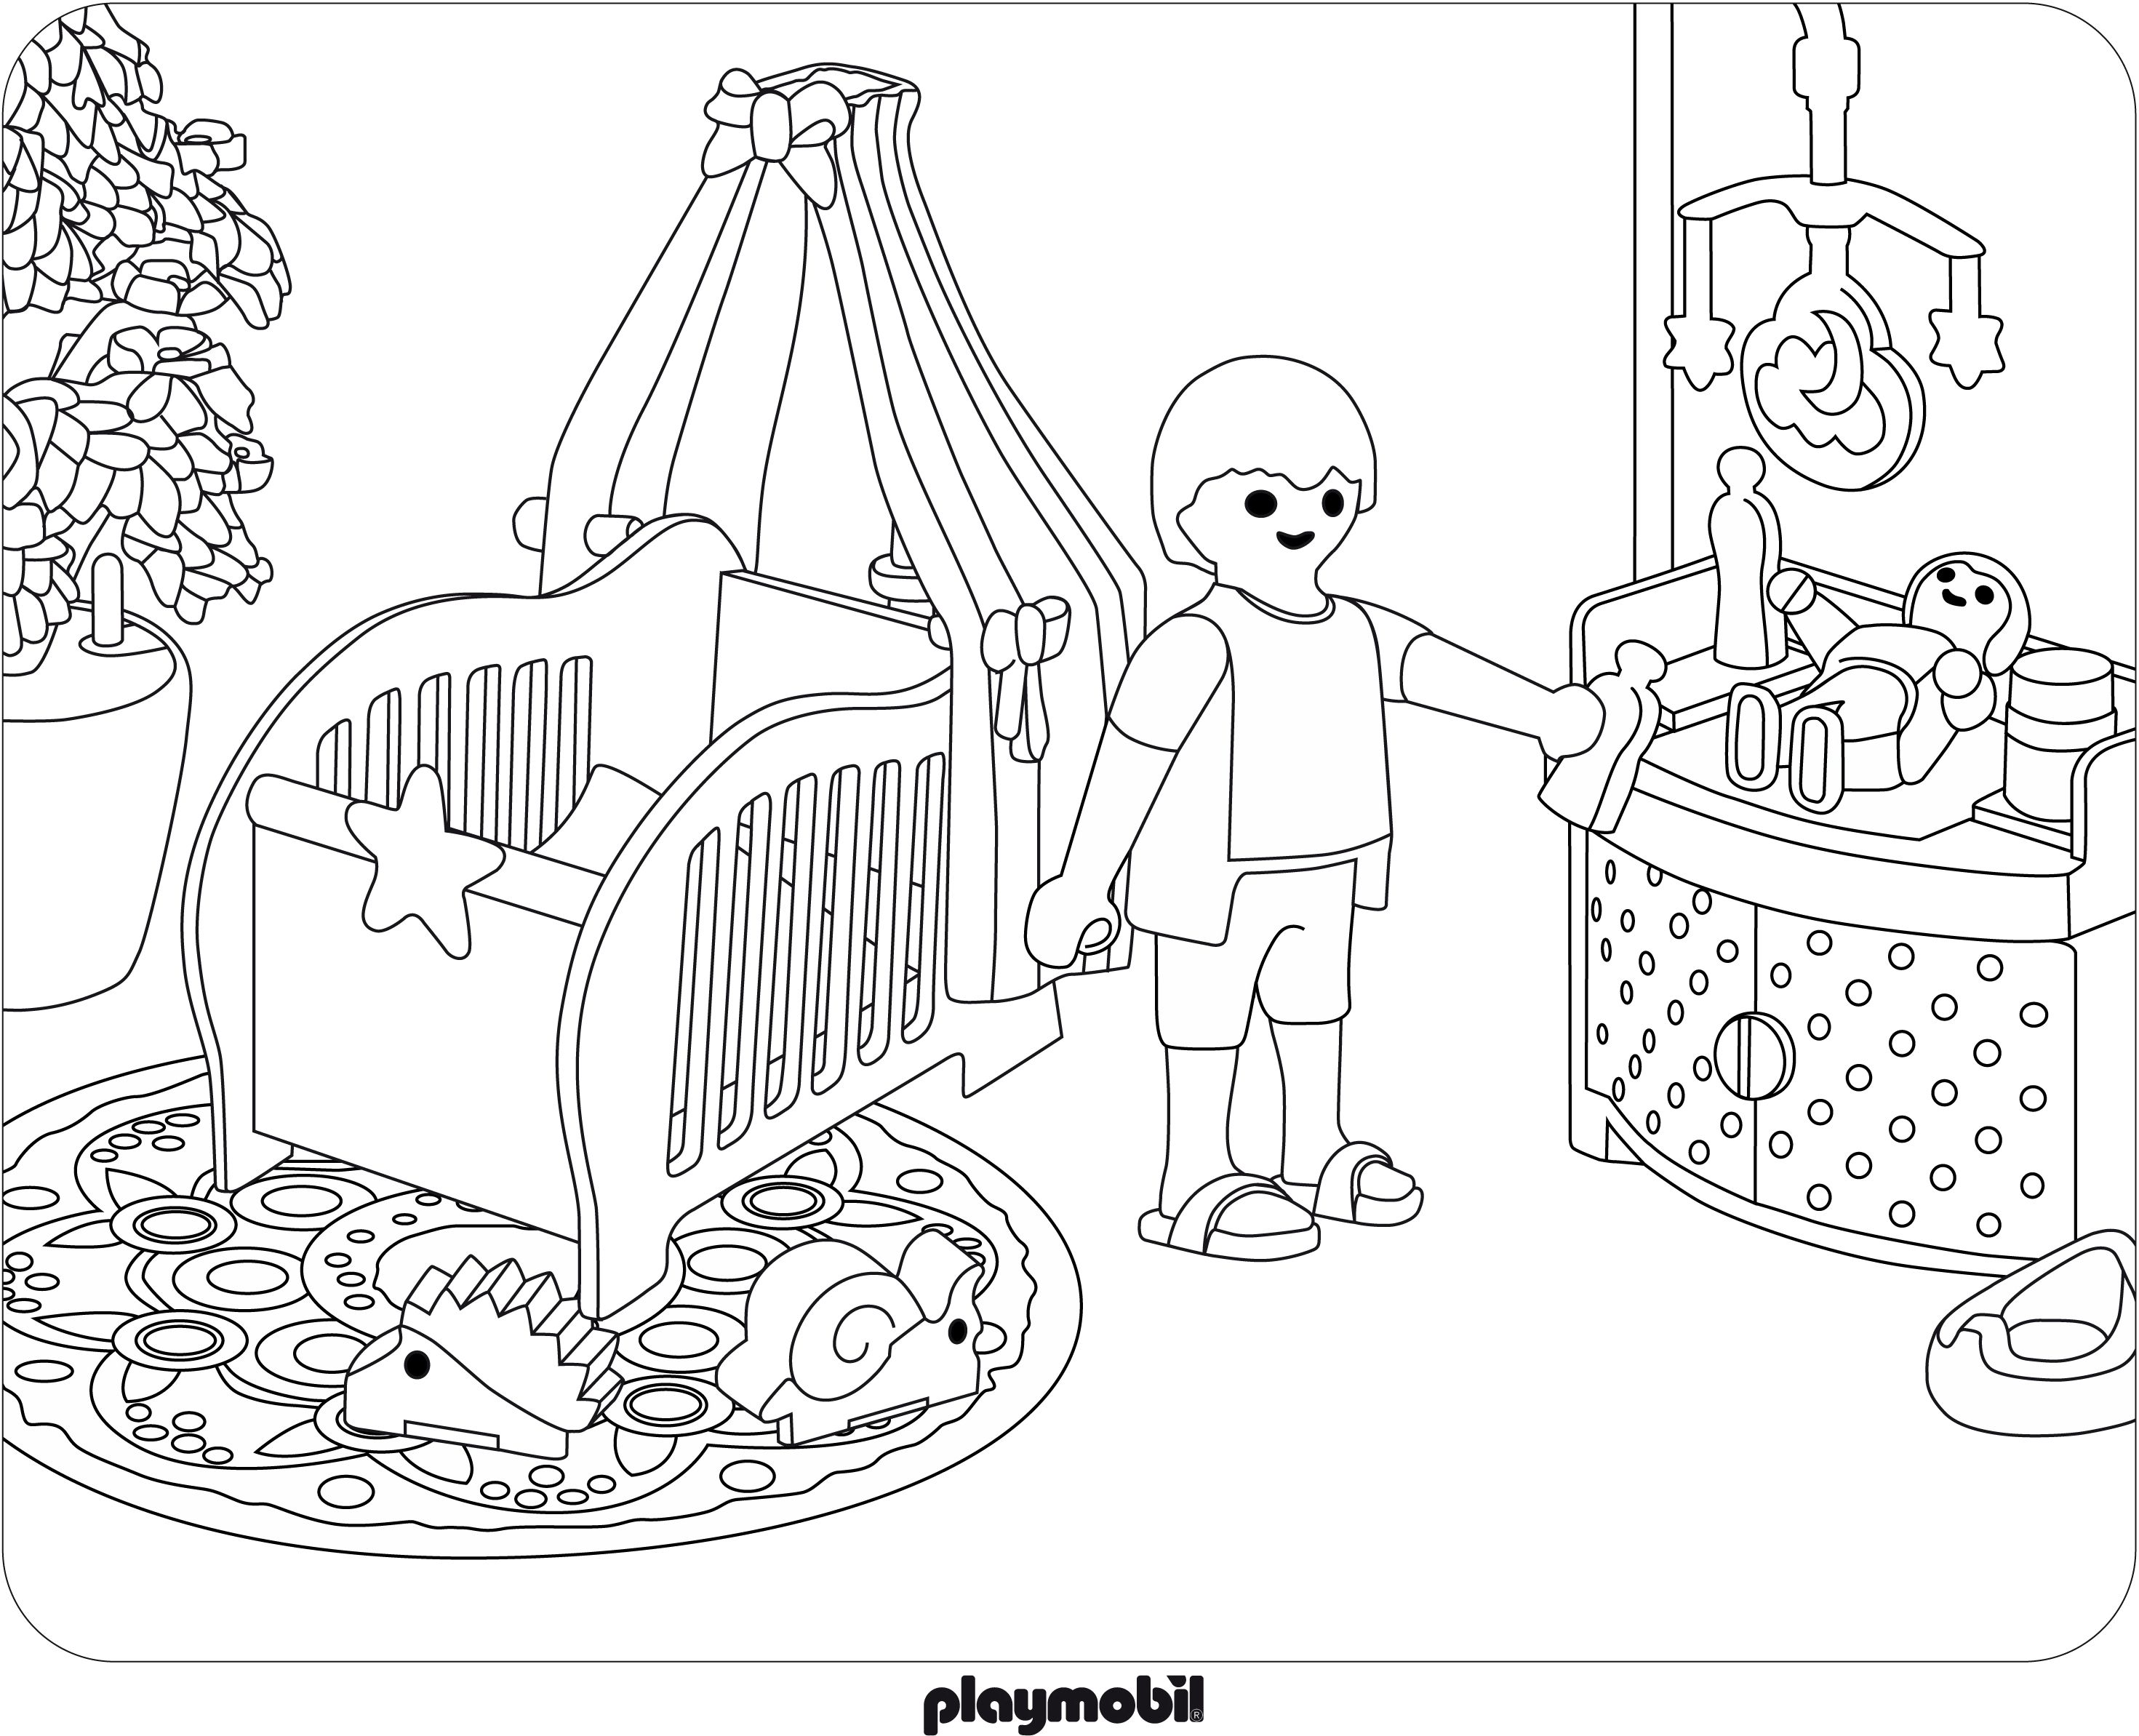 Ausmalbilder Playmobil Pirate Coloring Pages Coloring Pages Coloring Pages For Kids